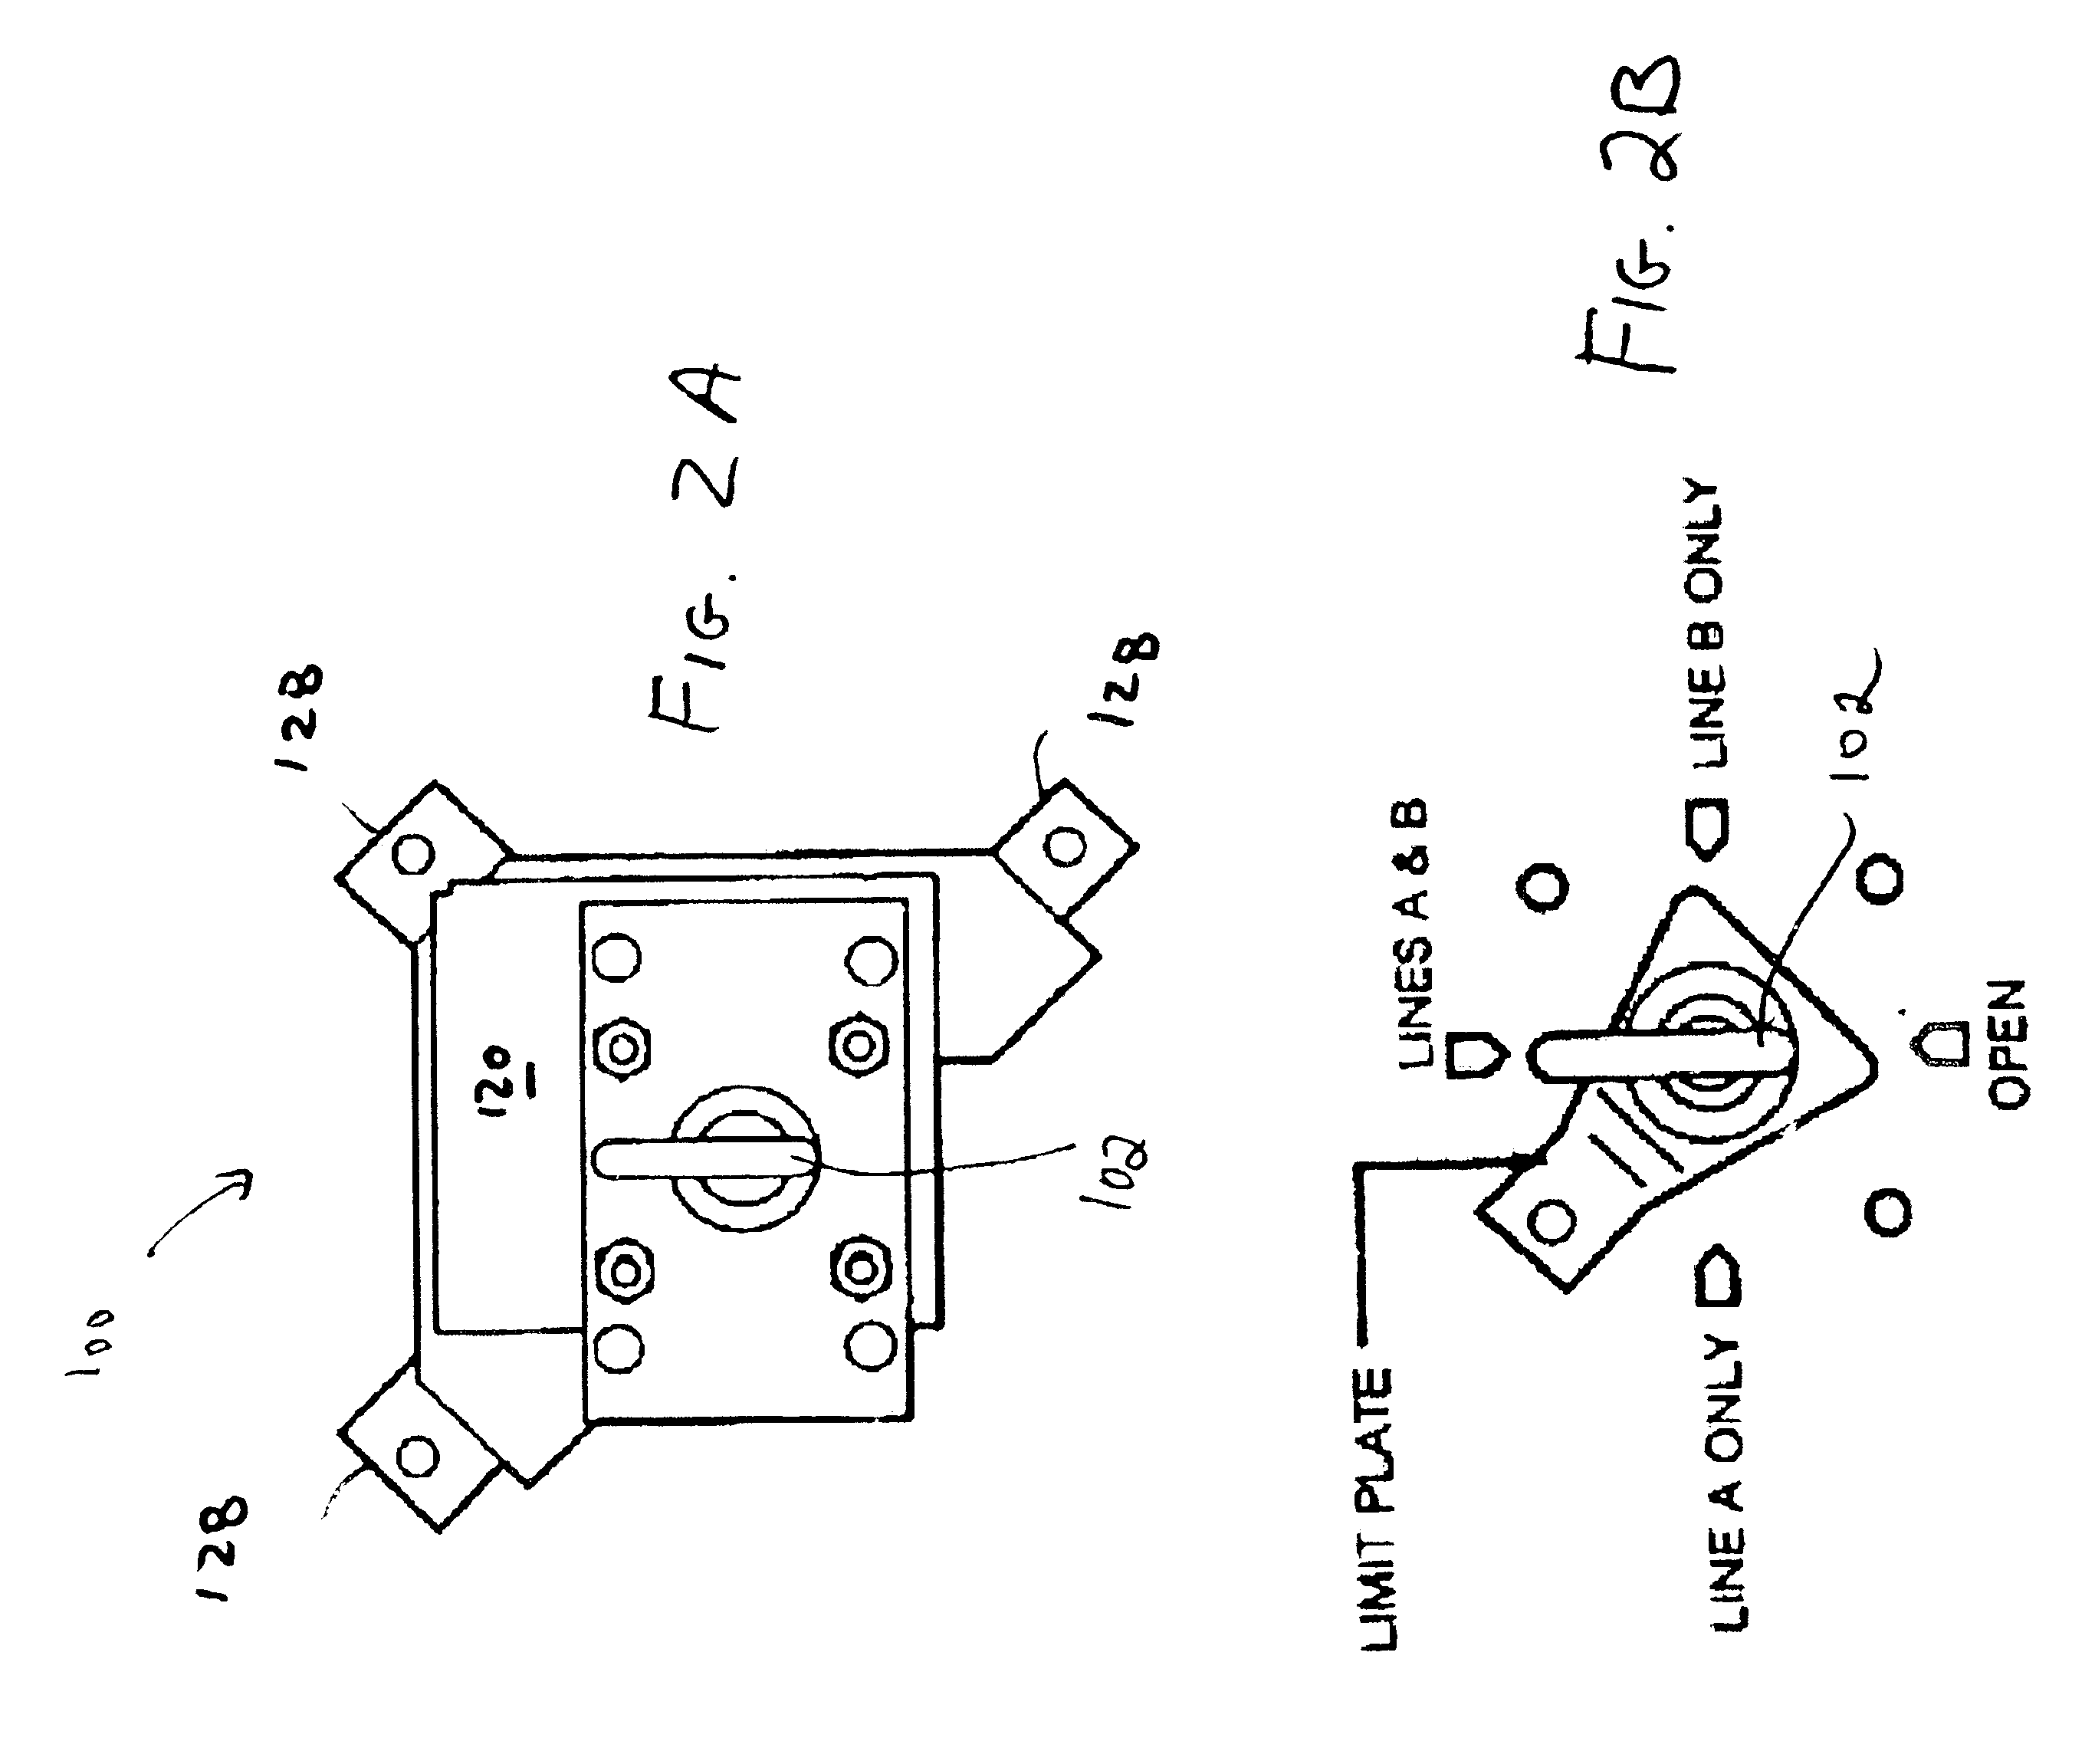 switch drawing at getdrawings free for personal use switch Wiring Diagrams for UPS Systems 2733x2301 patent us20040094394 make before break selector switch